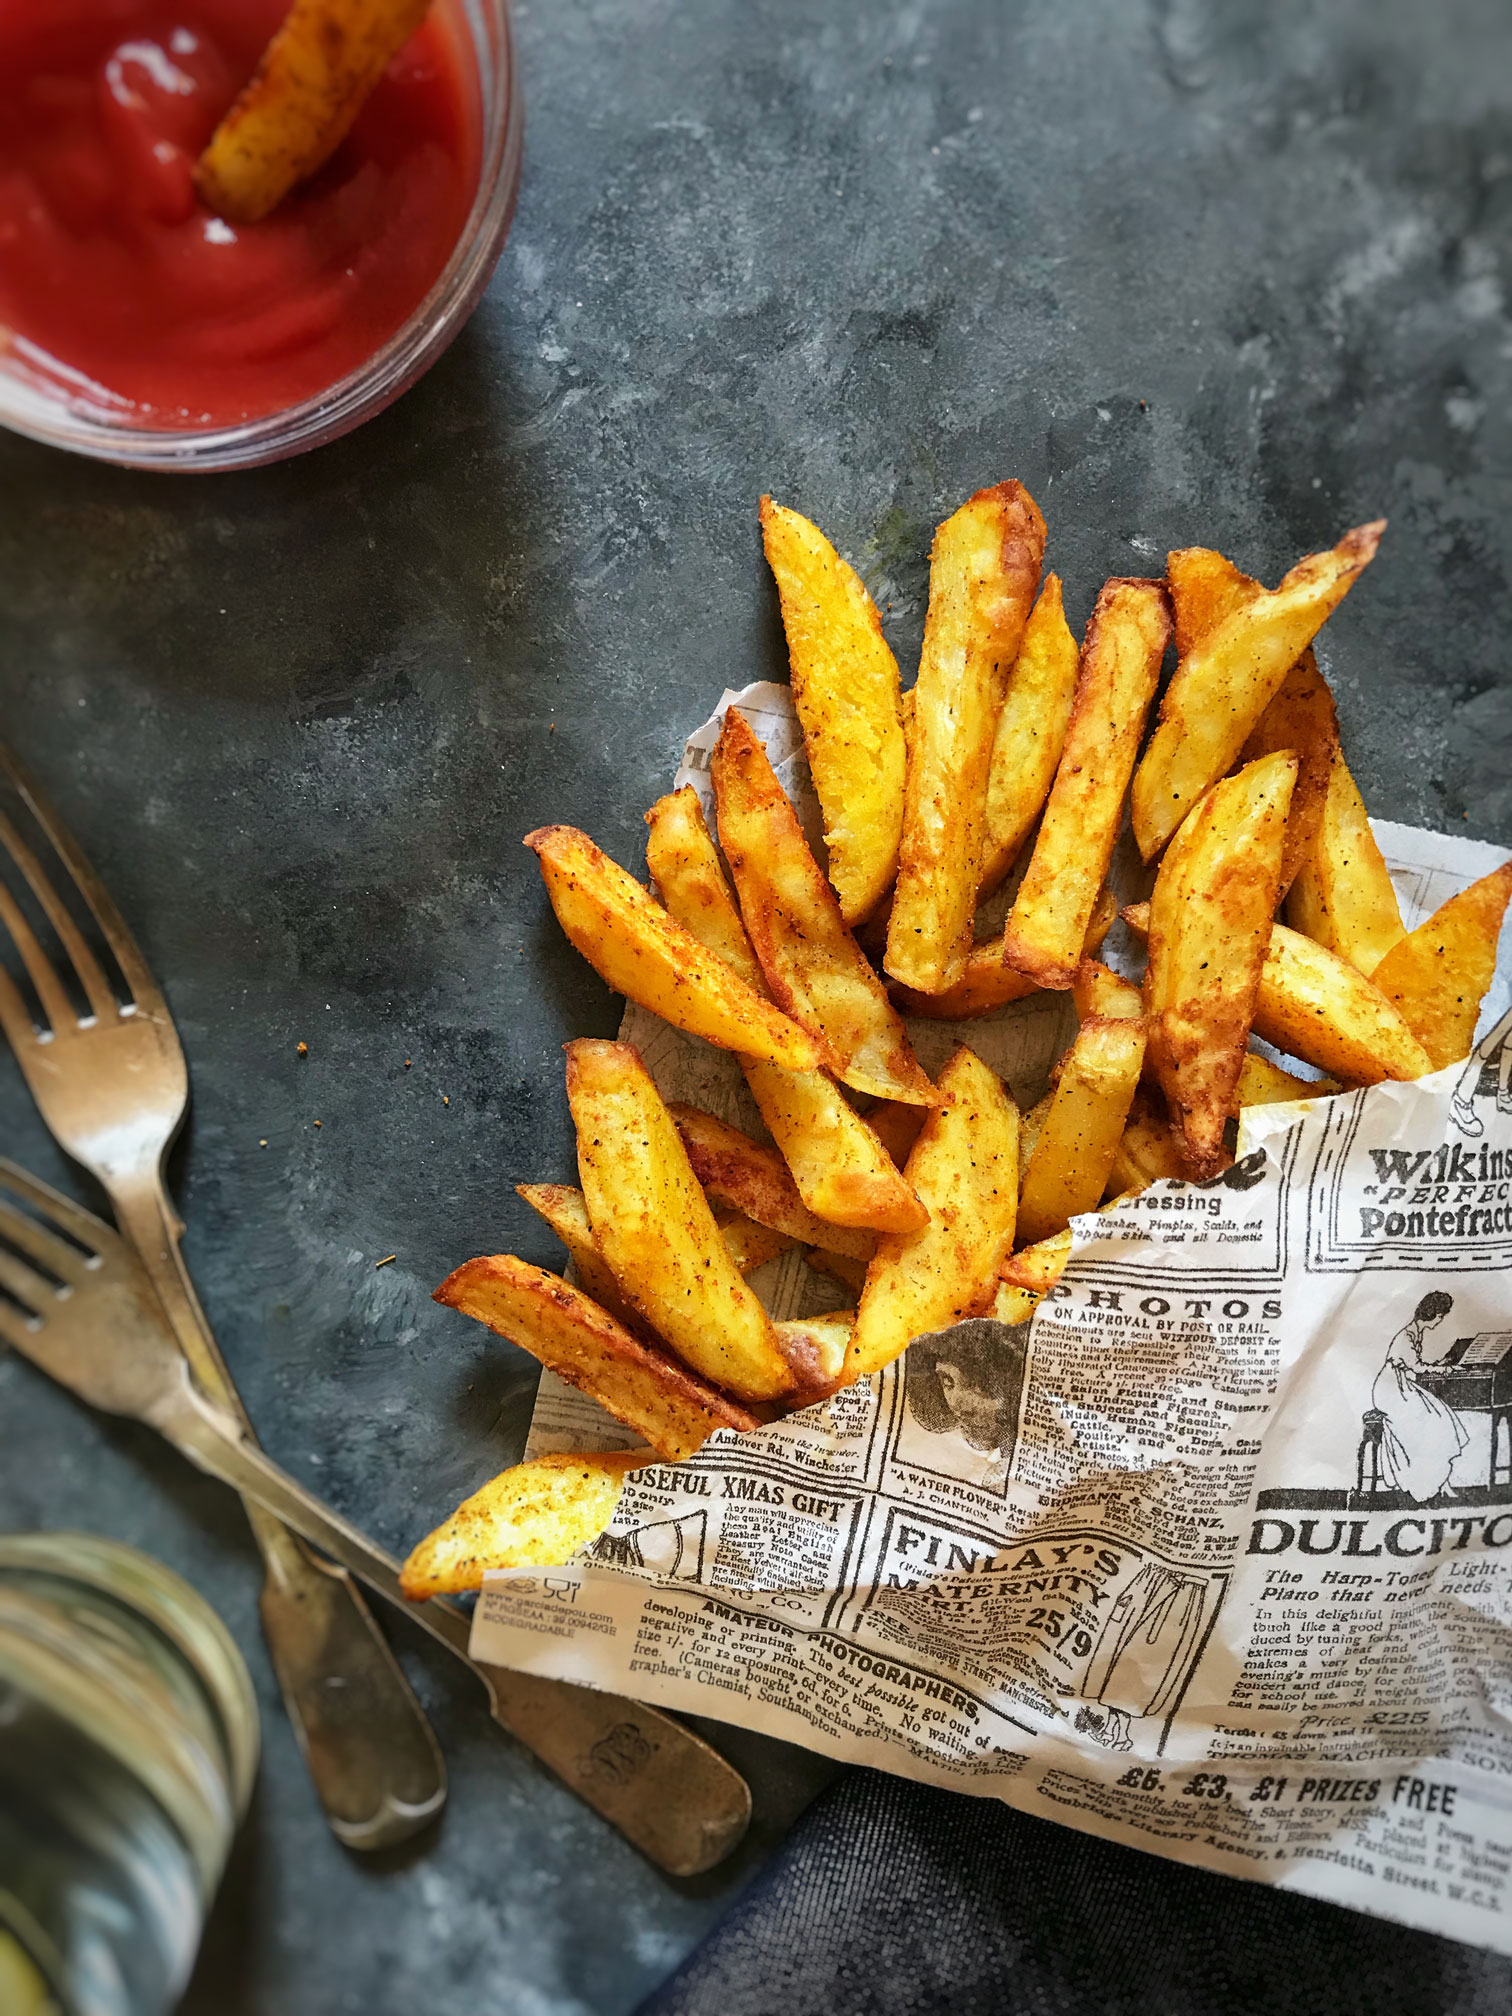 Oven baked spicy fries